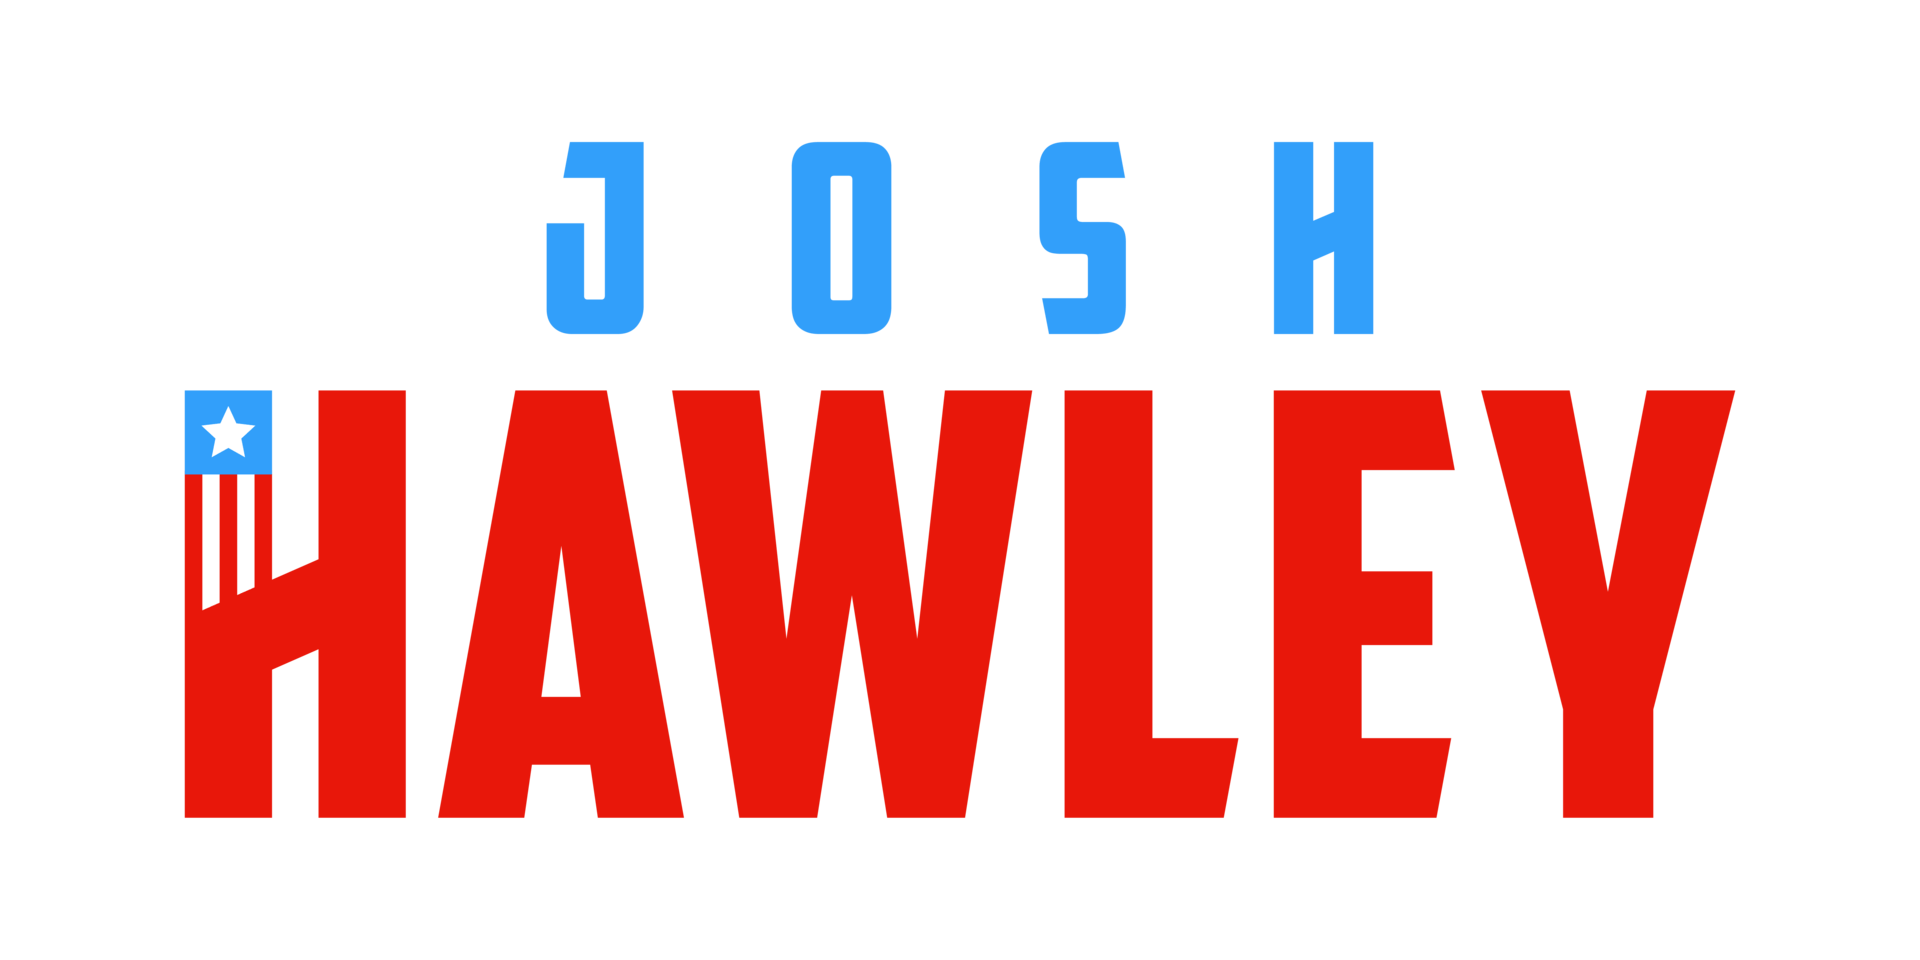 Joshhawley officiallogo  color bluestar